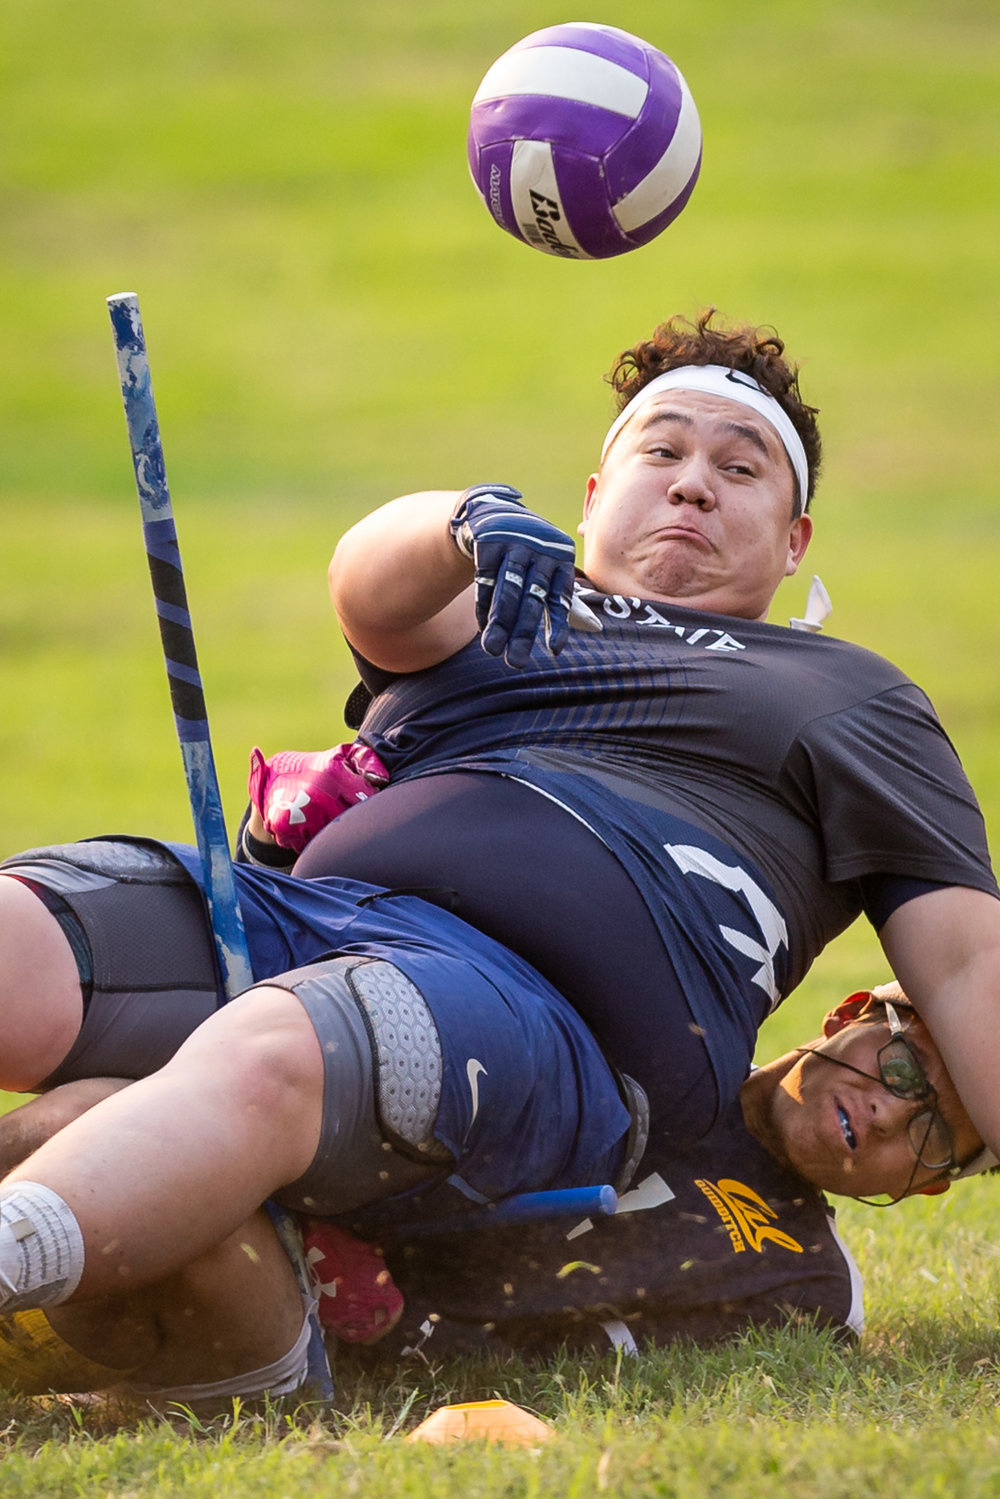 Utah State's Blake Rodman (91) passes the quaffle as he gets taken down by UC Berkeley's Matt Thur (17) during the Chandra Classic quidditch tournament at Redondo Beach, CA, on Nov. 10, 2018. Cal won 80-170 and went on to take first place in the tournament.